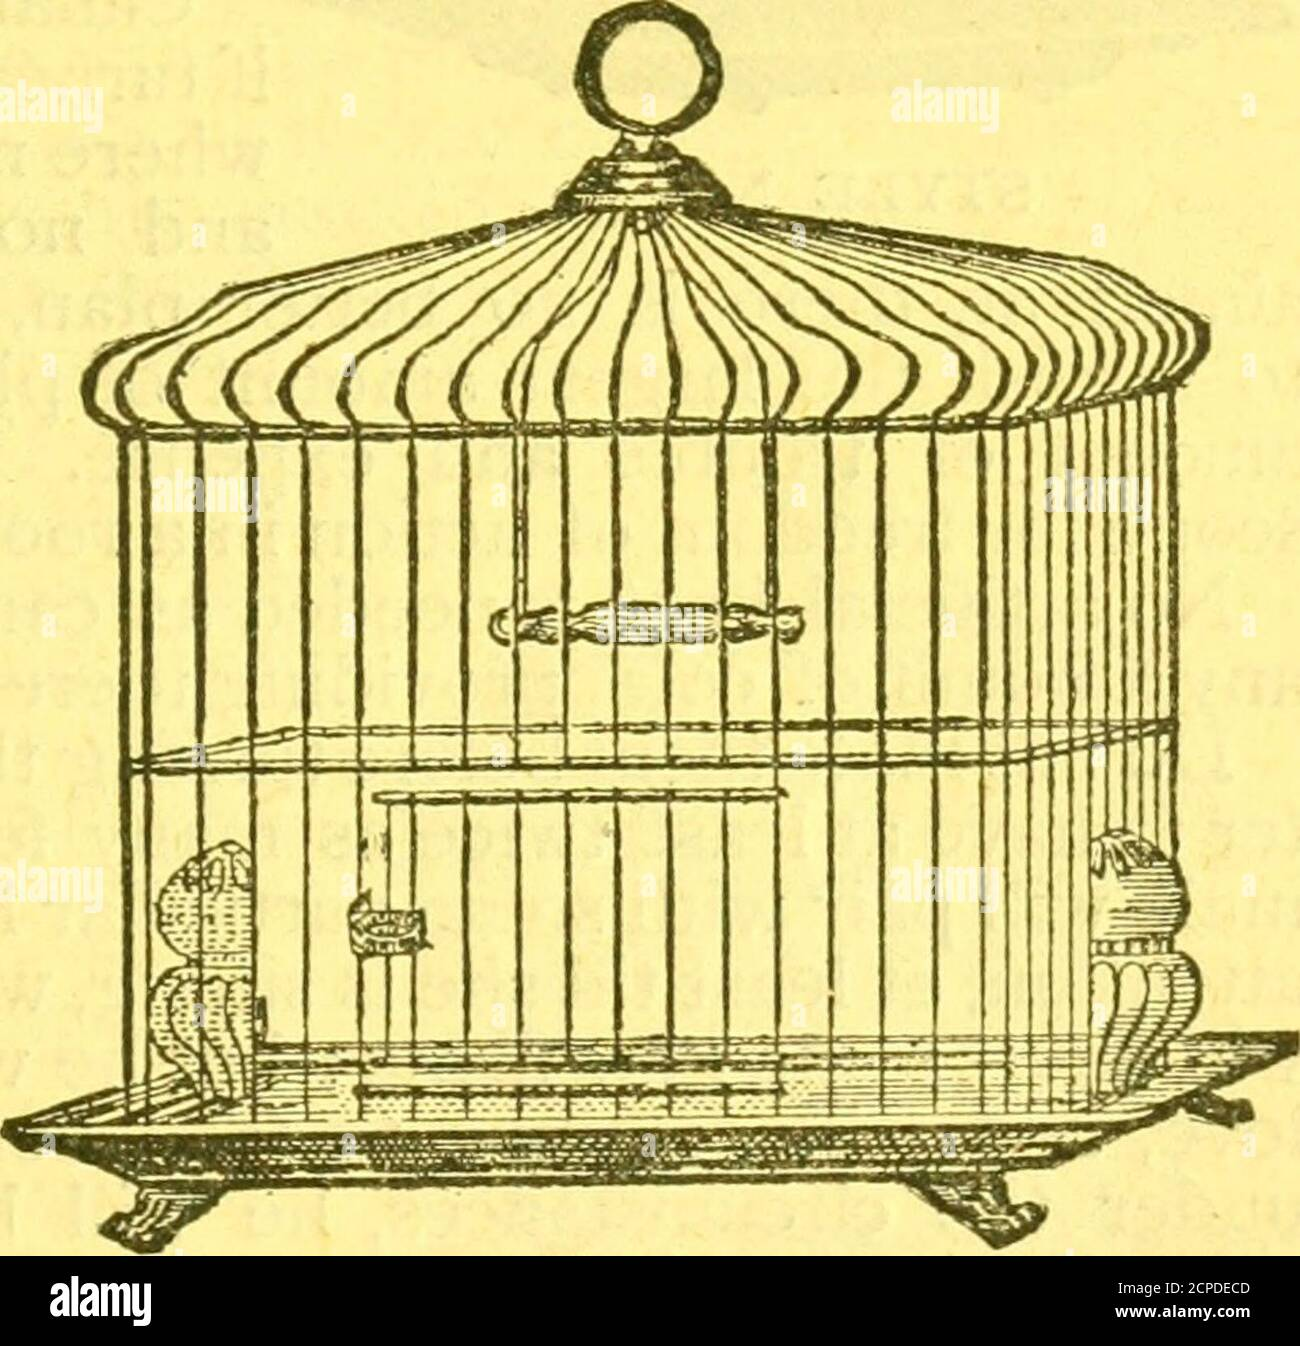 . The Bird food company's book of cage birds: . ^, otherwise fretfulness isencouraged, which it is well to avoid. A wire partitionwill do for a day or so when they are first separated, so. STYLE NO. 2. 22 BIRD FOOD COMPANYS BOOK OF CAGE BIRDS. Stock Photo